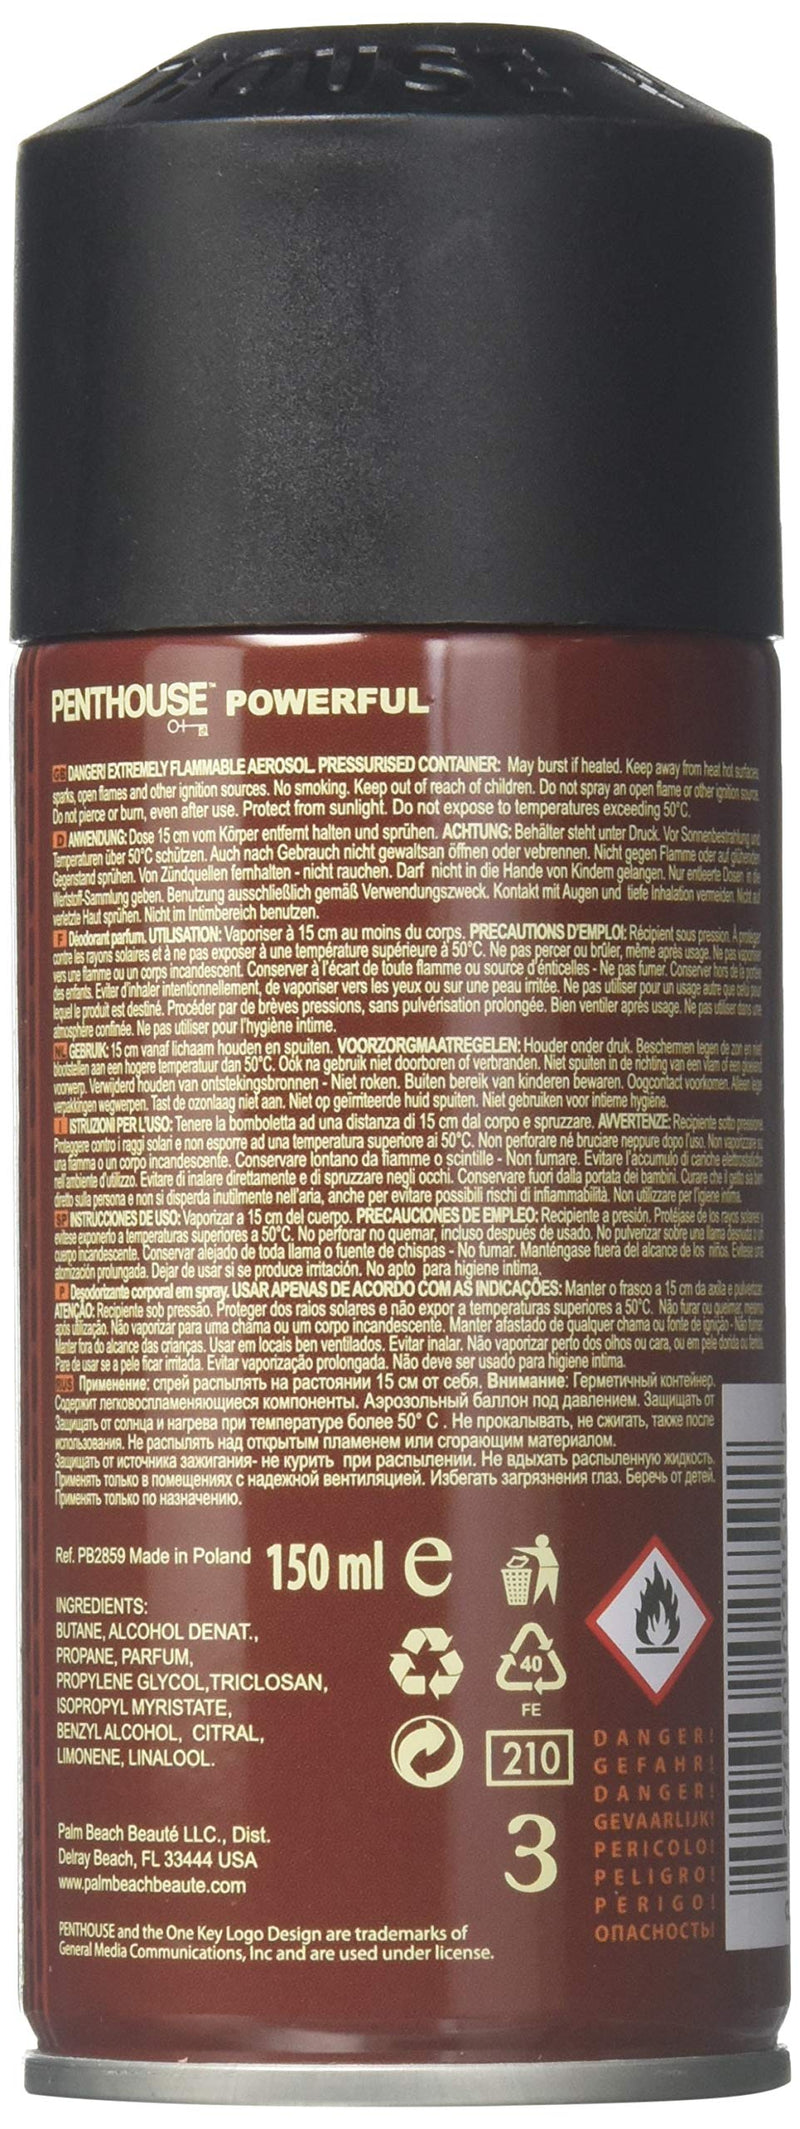 Penthouse Powerful By Penthouse Body Deodorant Spray 5 Oz